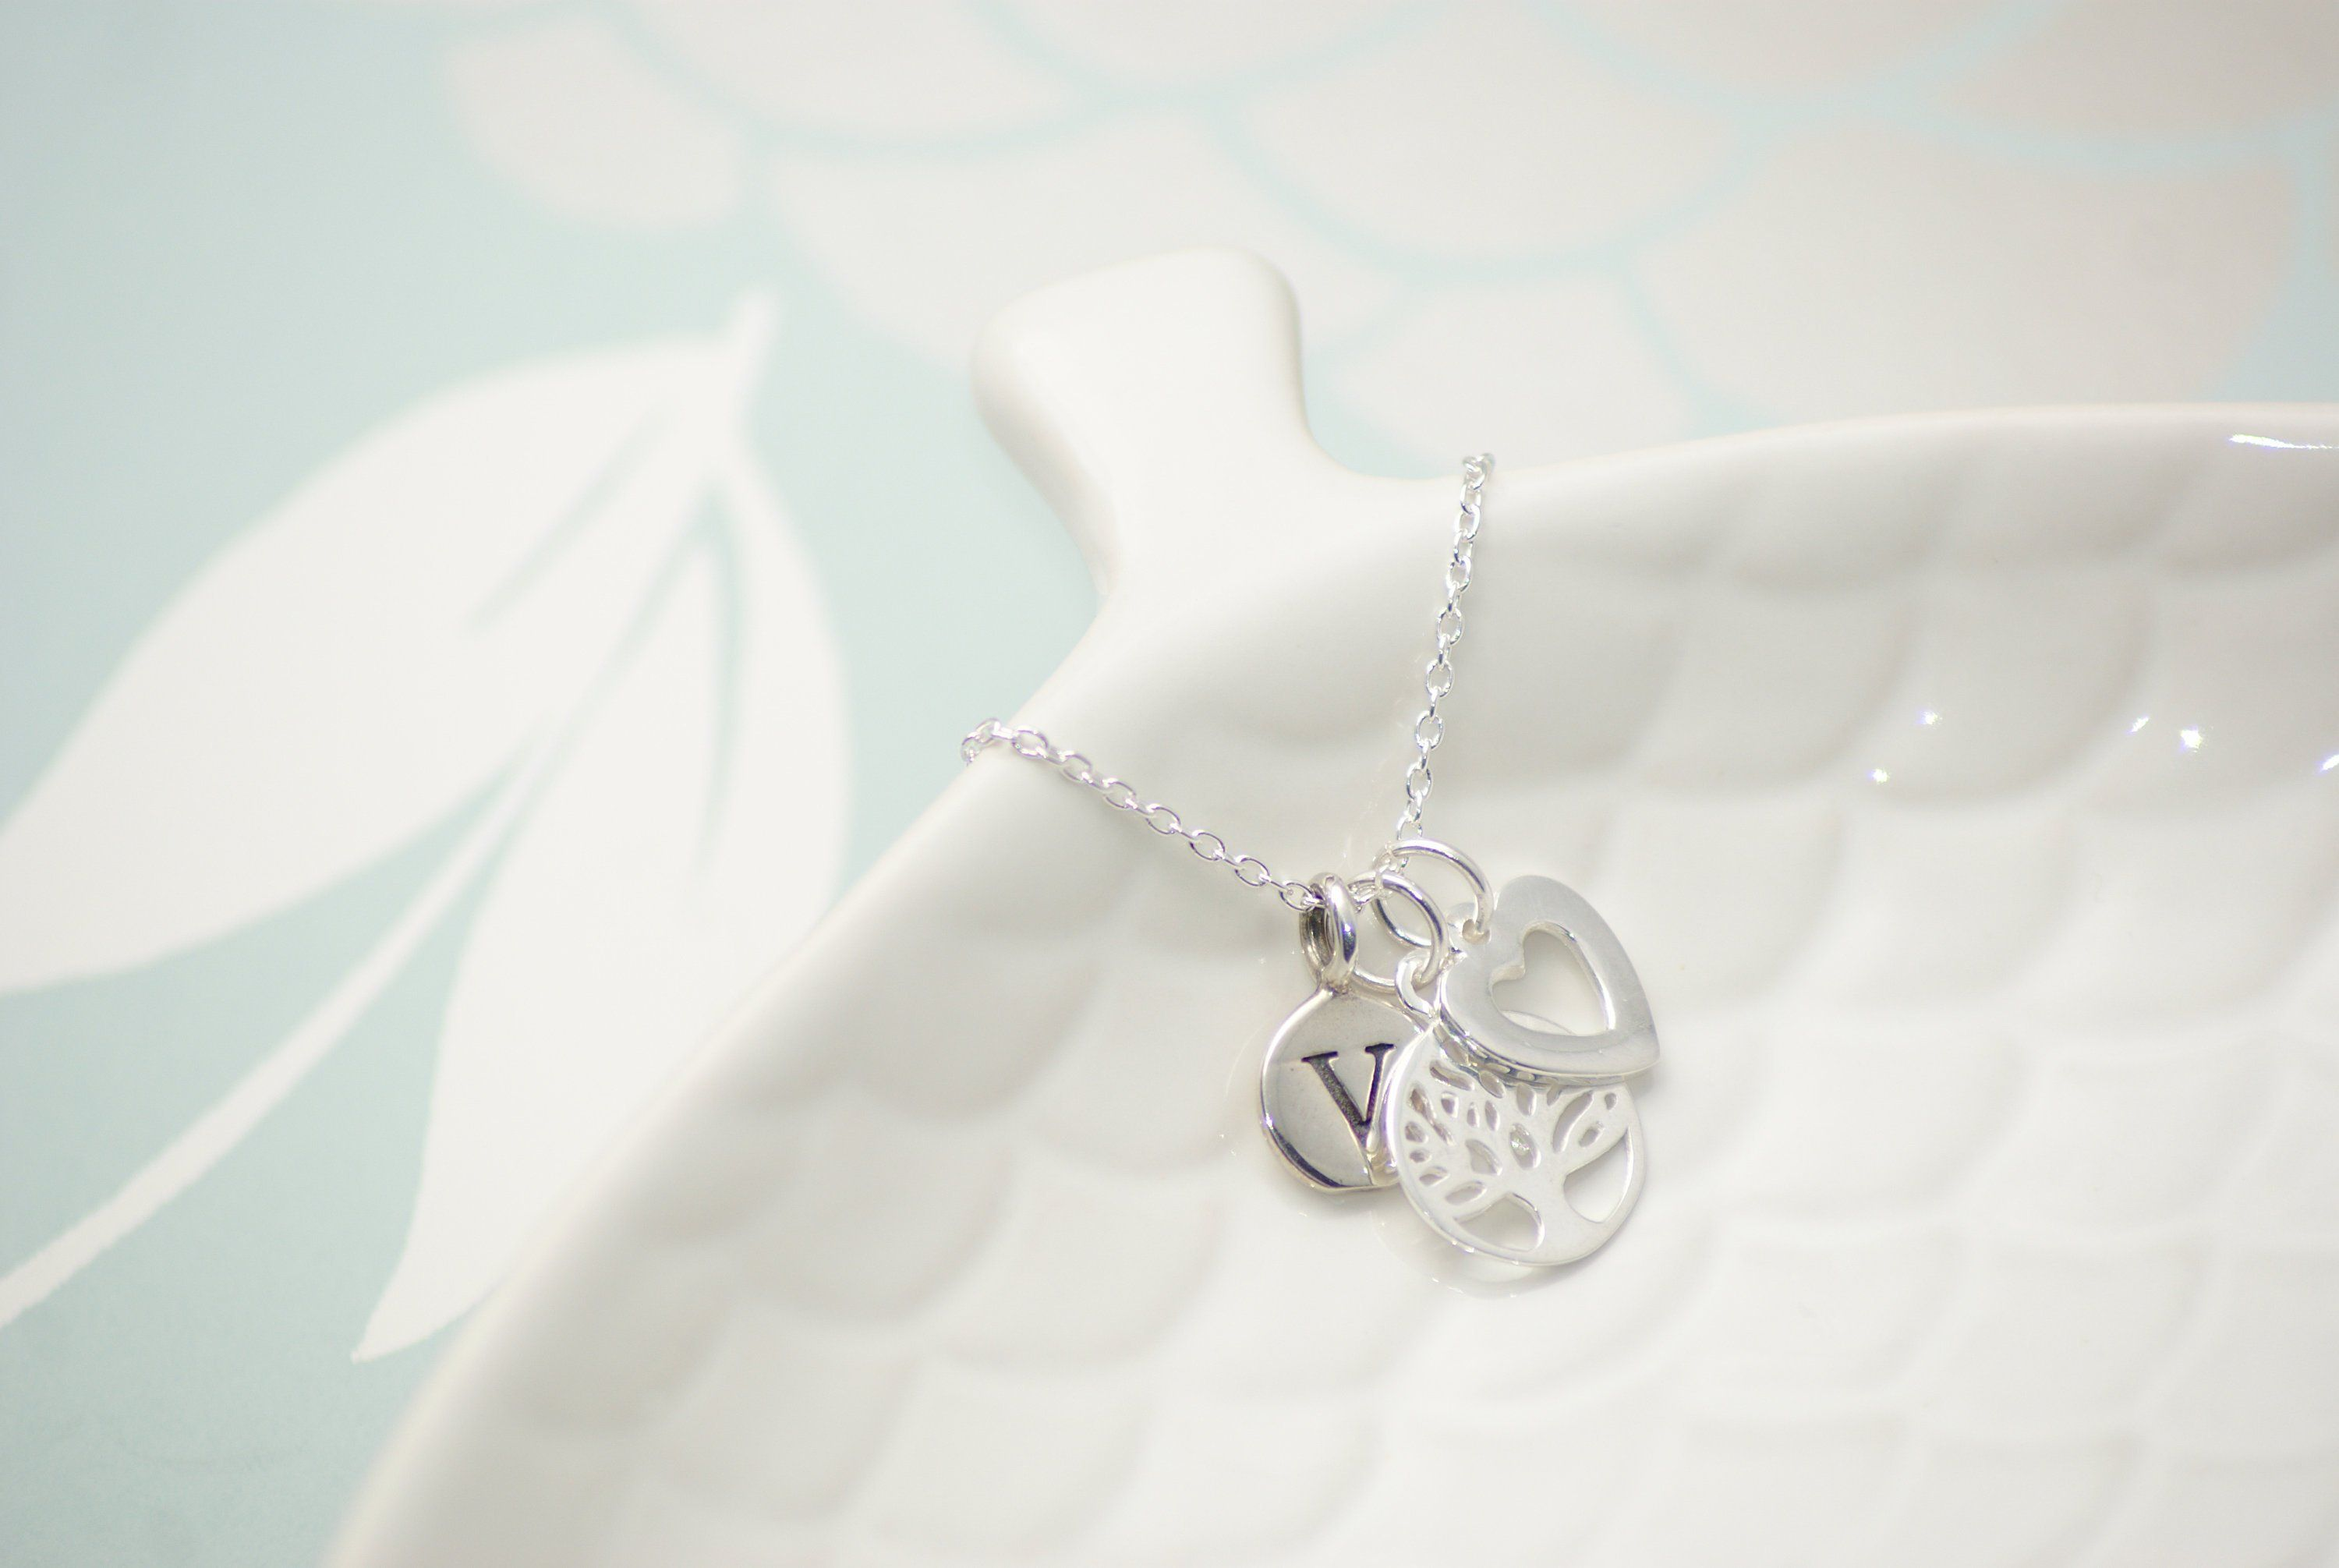 e4faa1e614d17 Tree of Life Necklace with Personalised Initial - Personalised ...